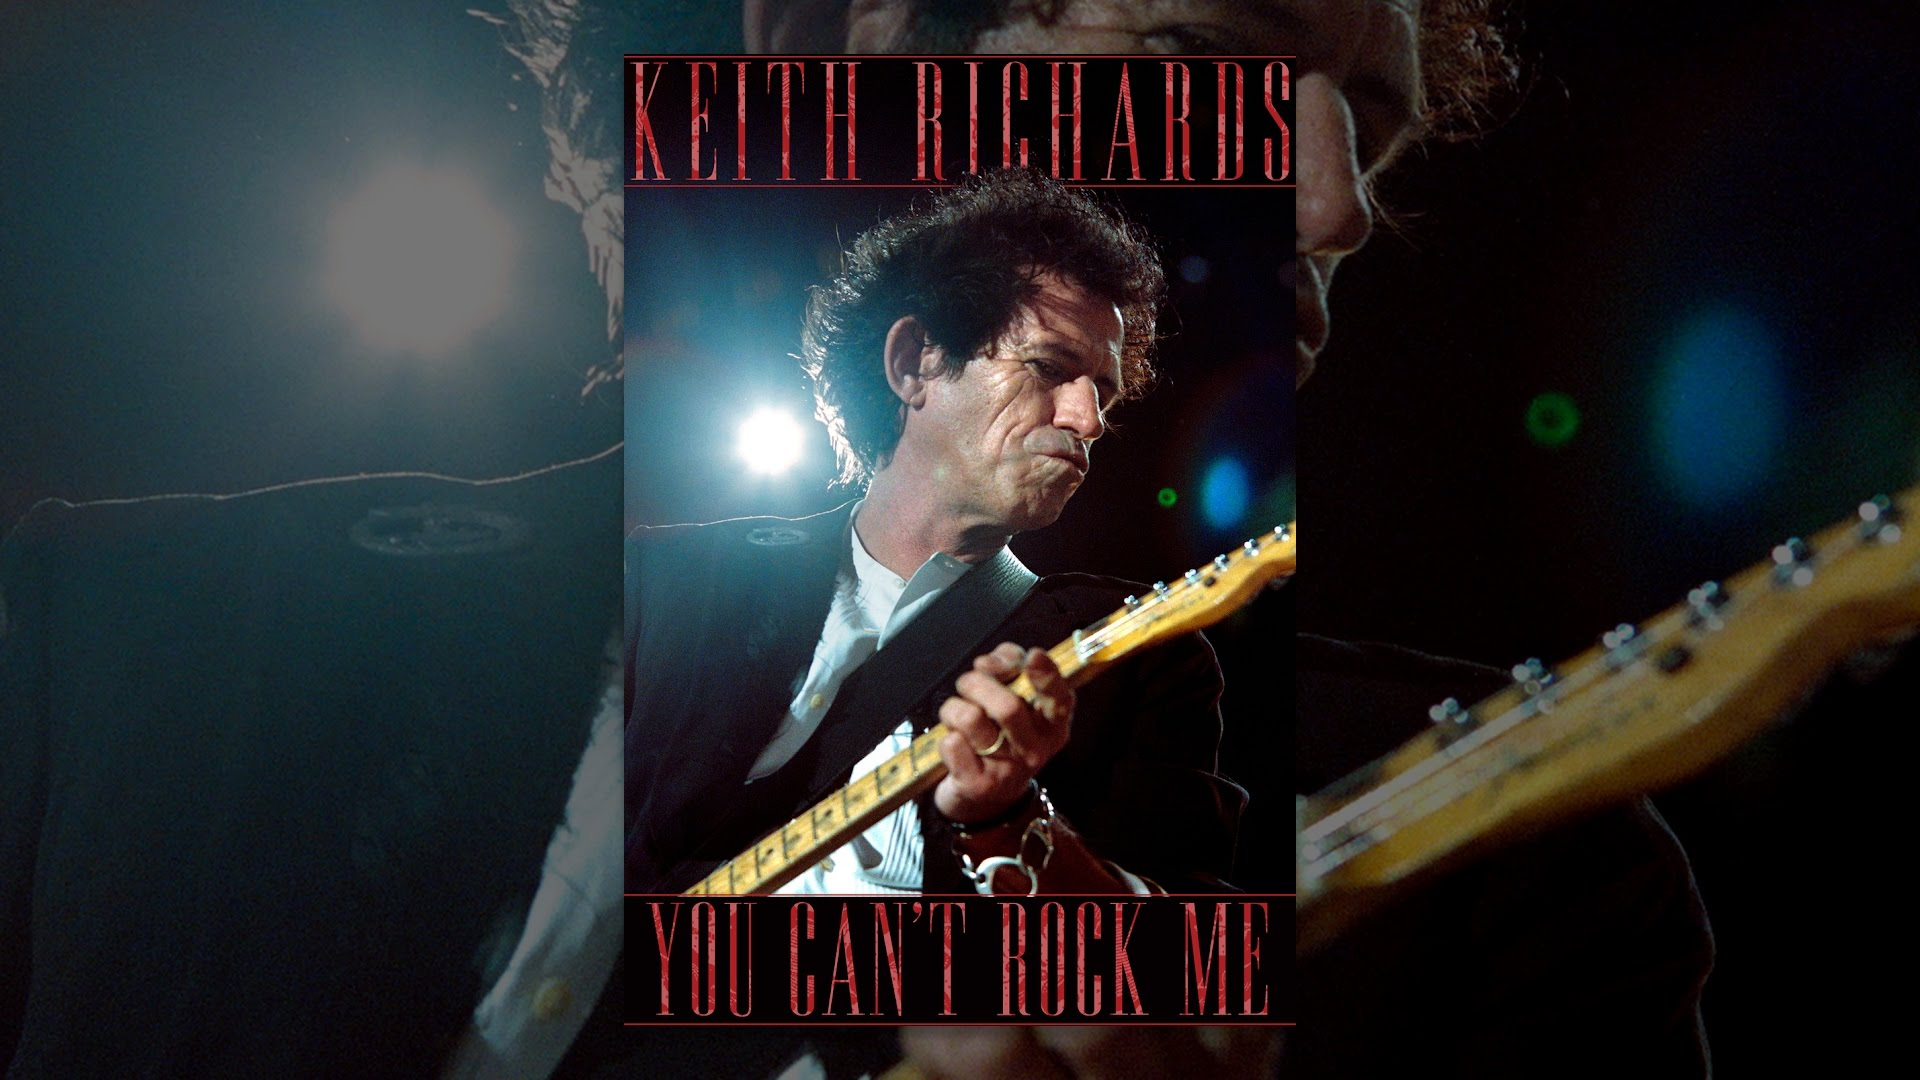 Keith Richards: You Can't Rock Me